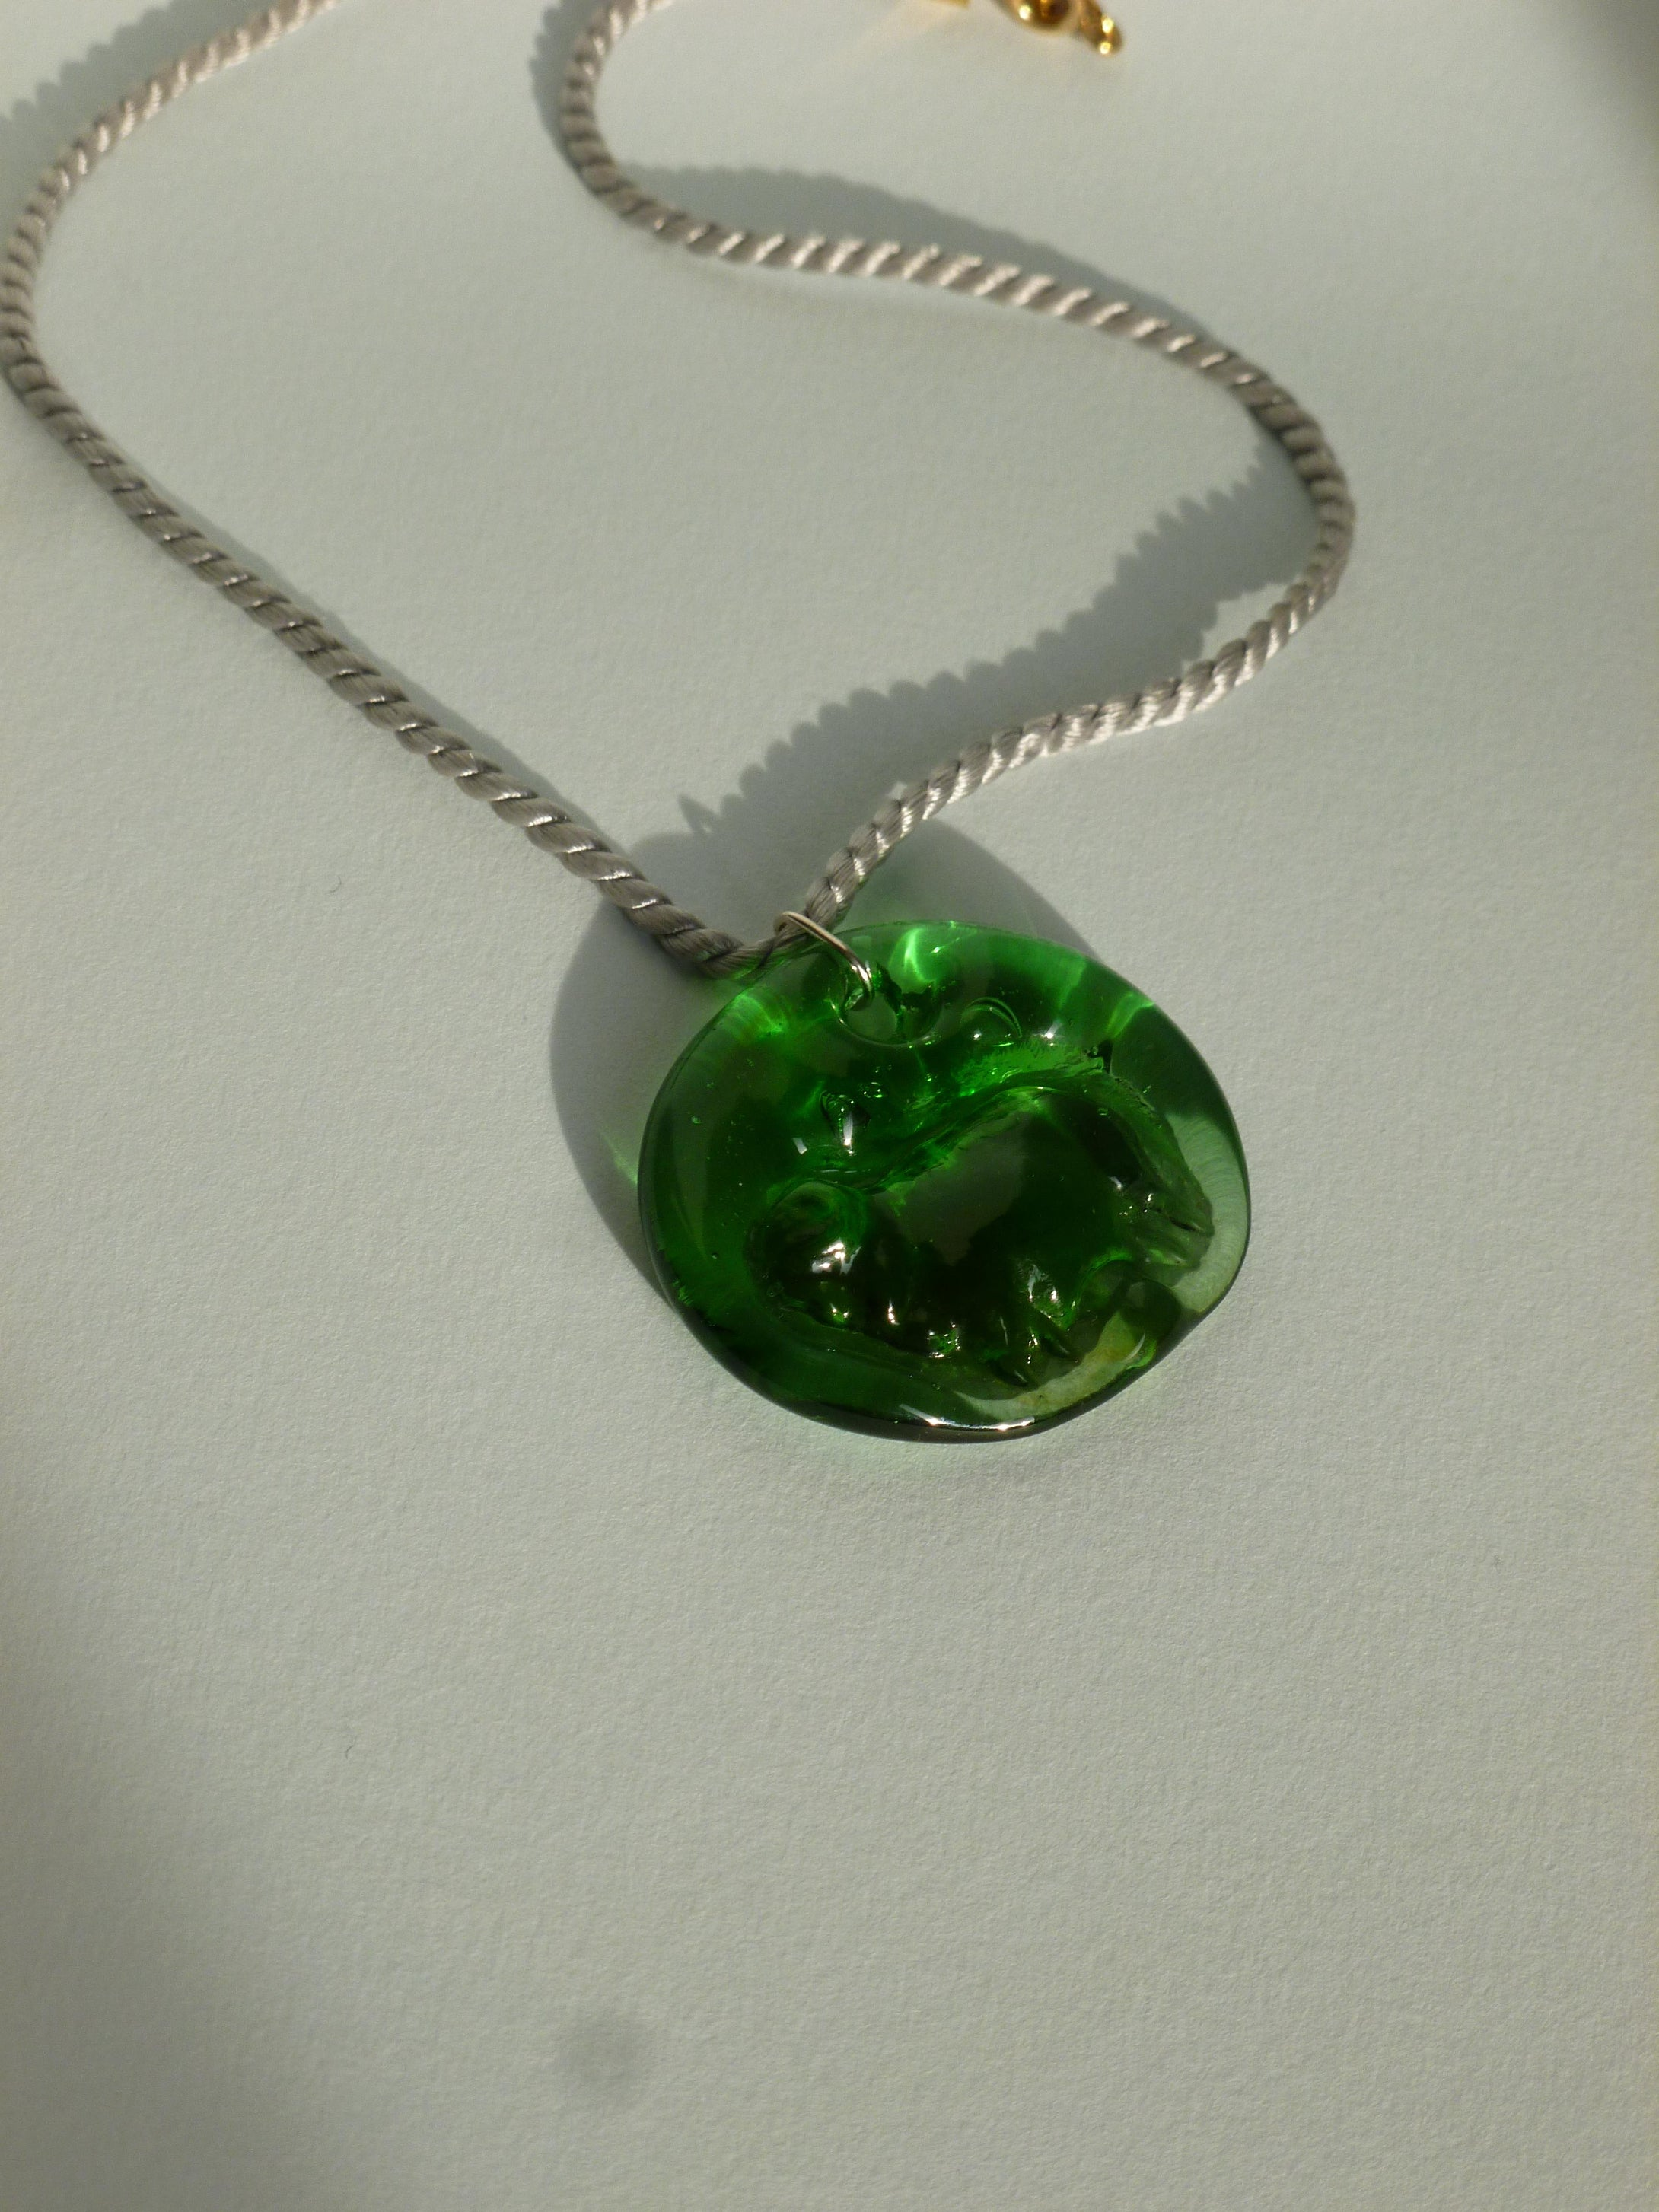 New Ovella Necklace - Green and grey